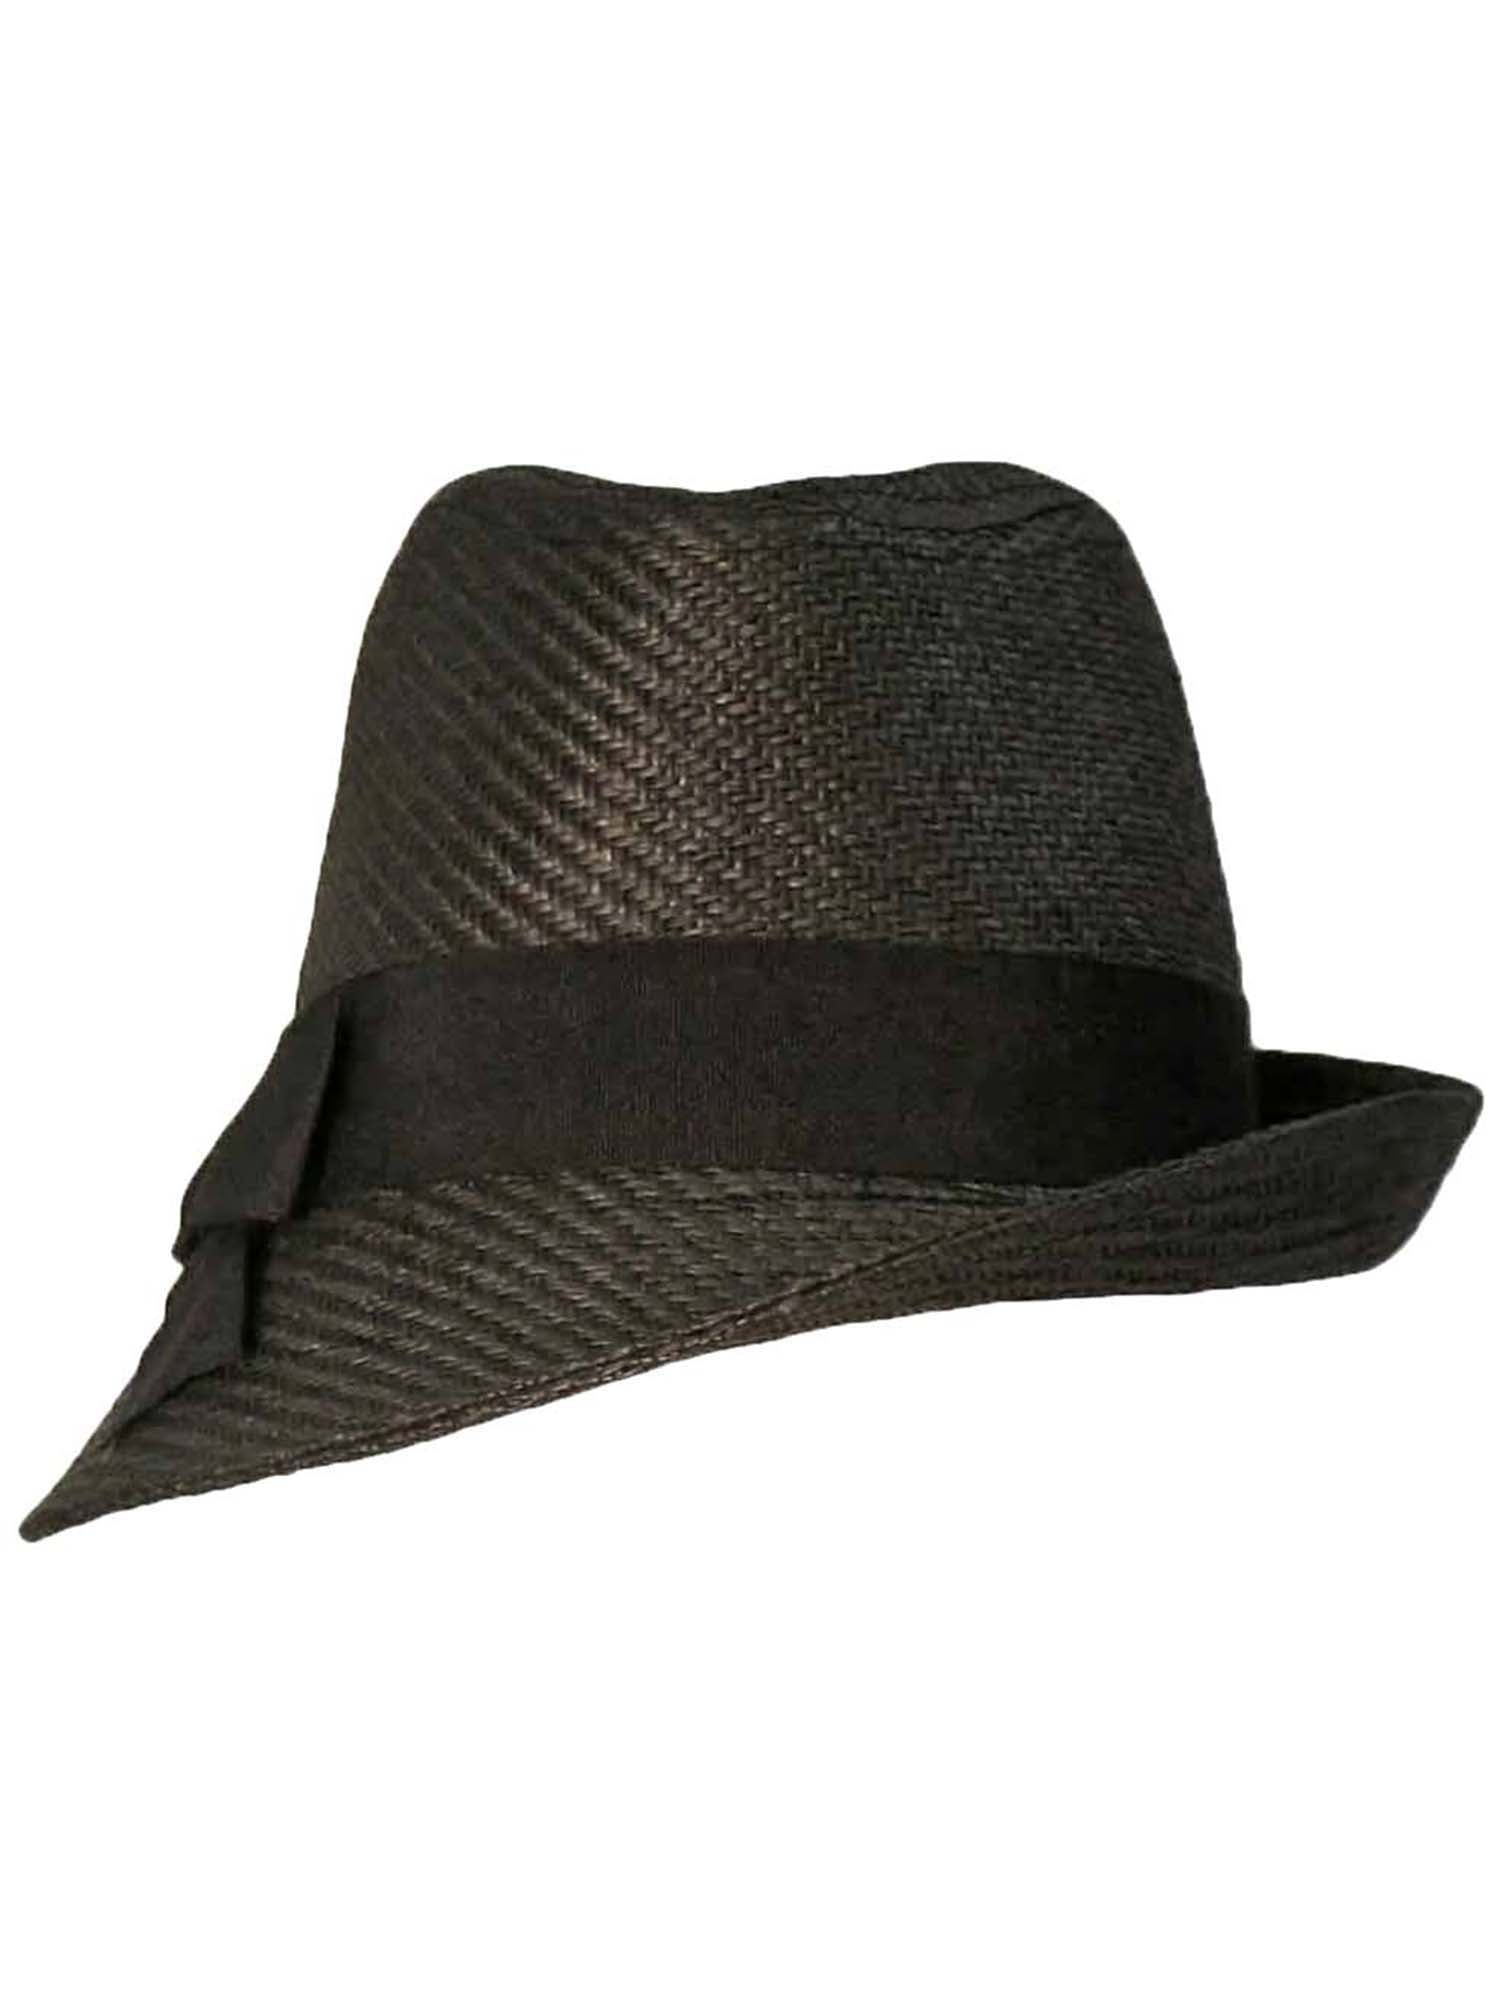 Black Fedora Hat With Slanted Brim